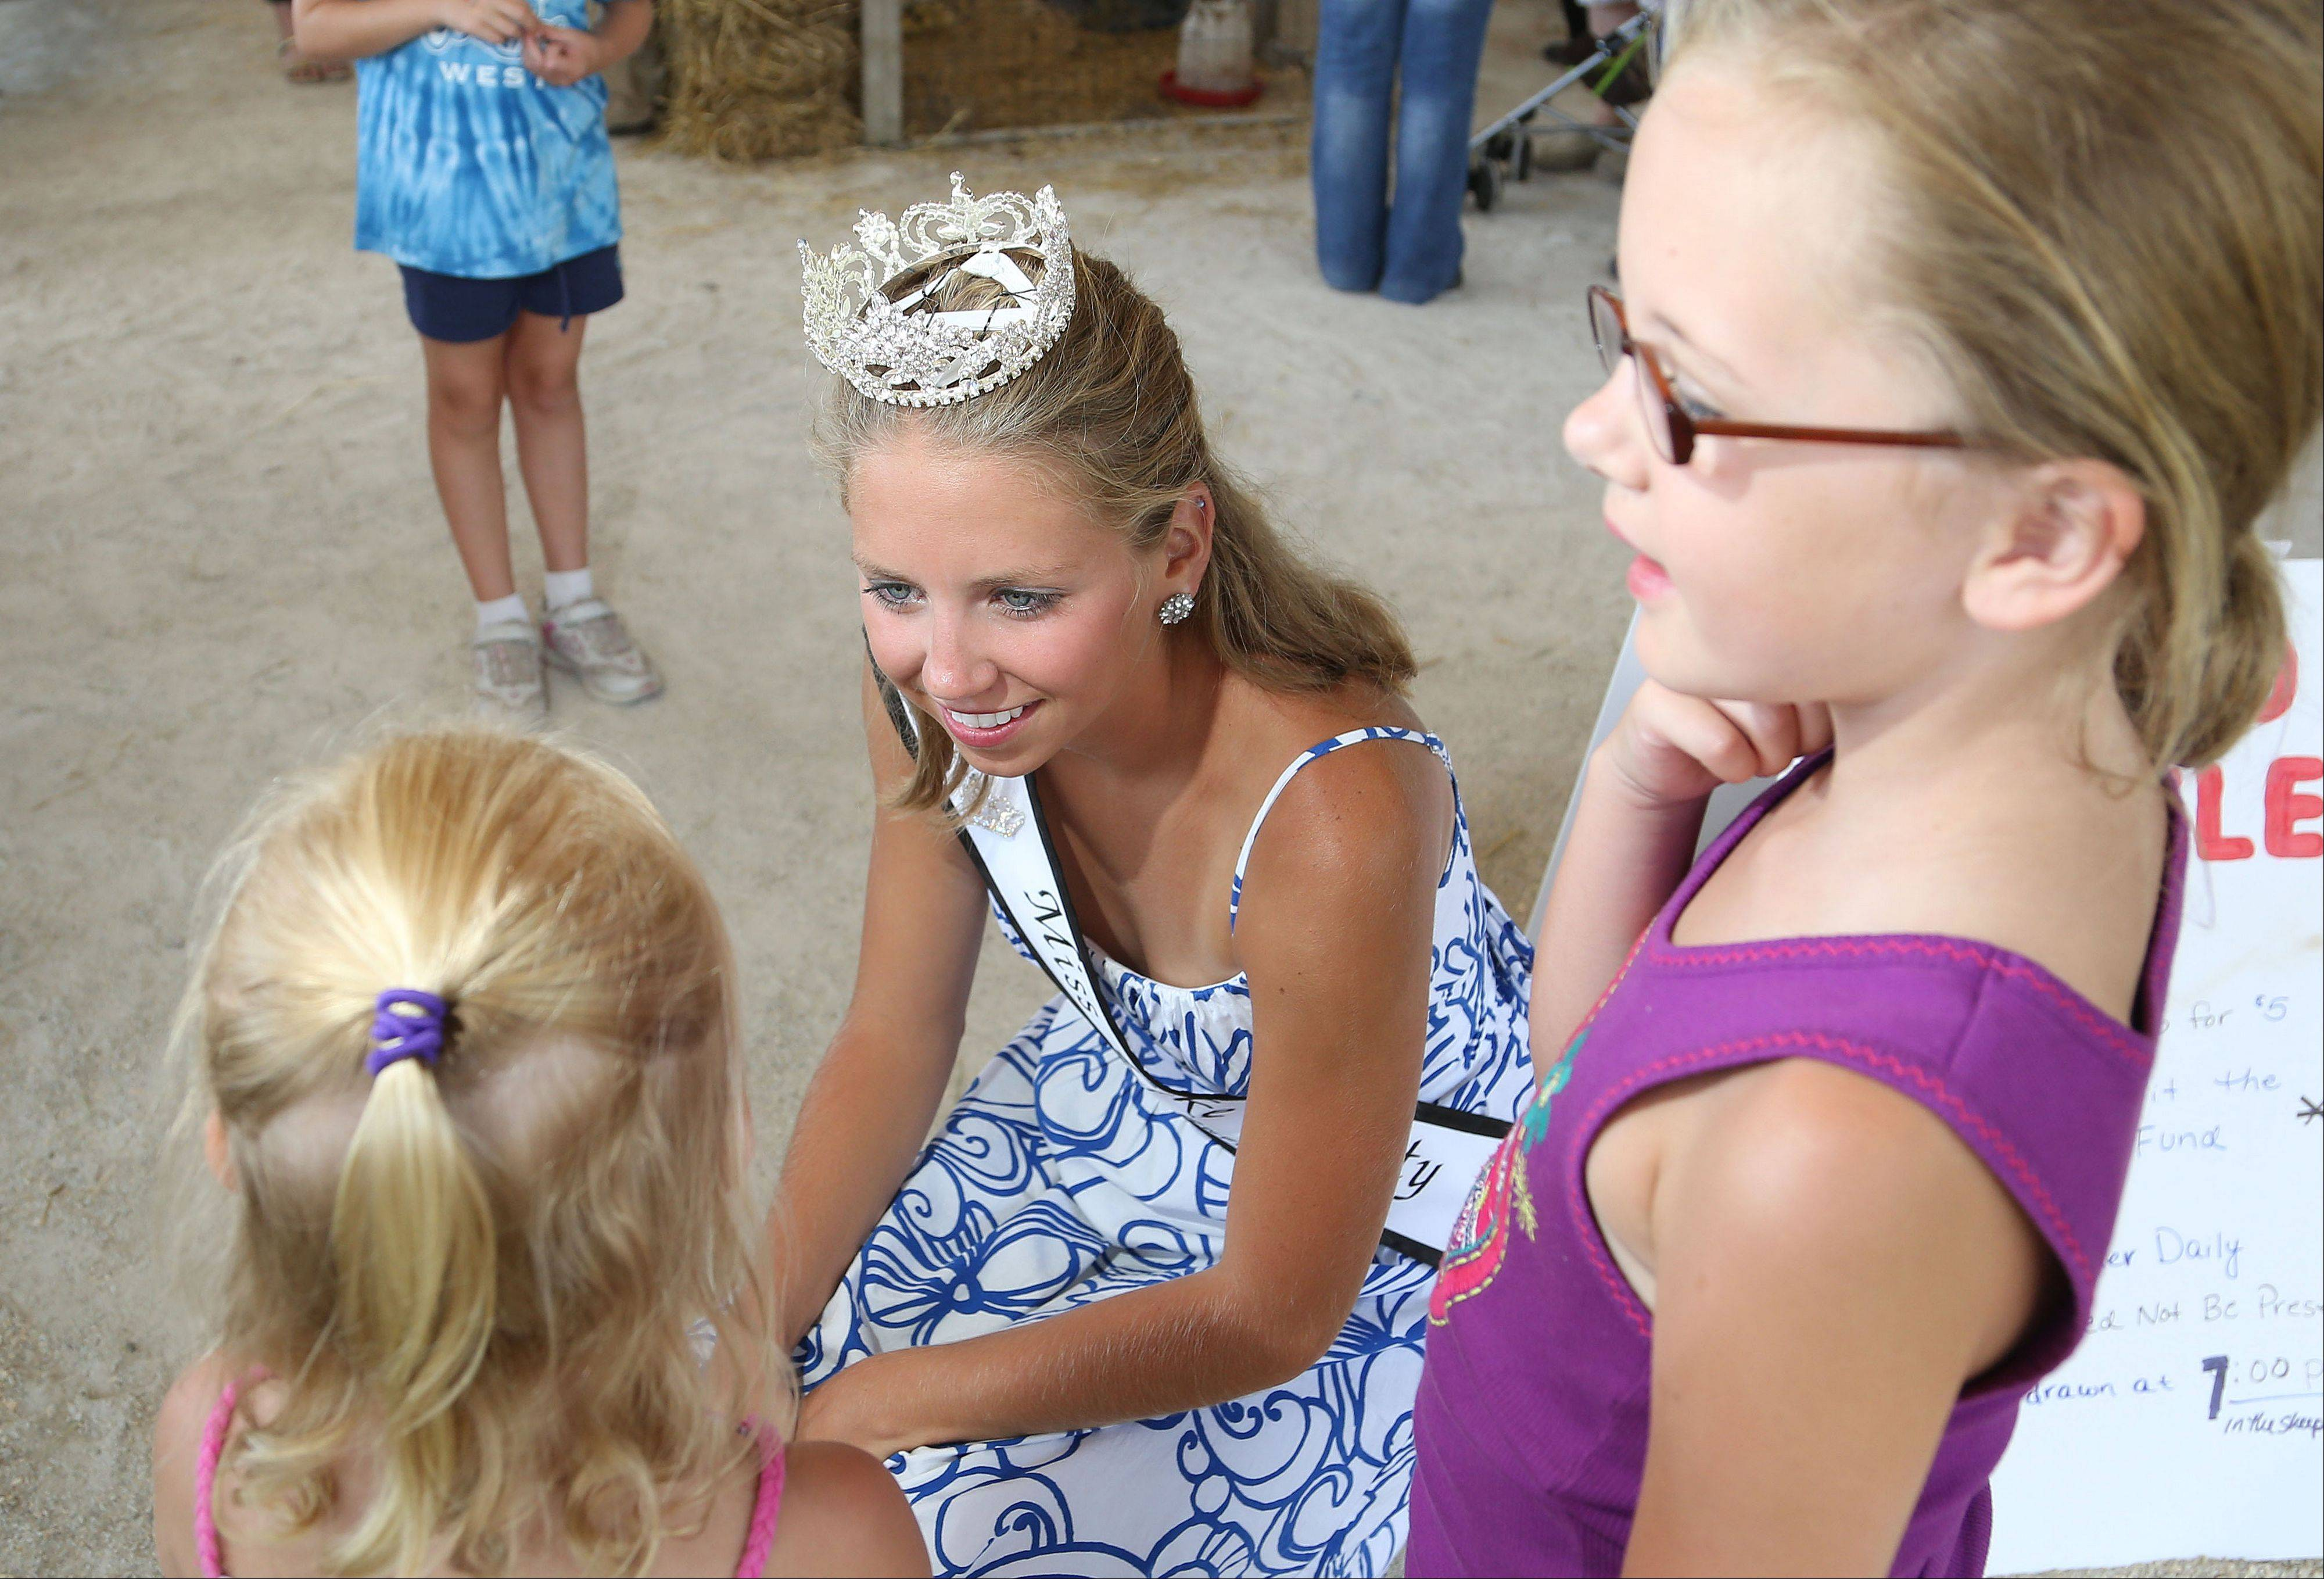 Newly-crowned Miss Lake County Fair Queen 21-year-old Meghan Opolka of Antioch talks with 4-year-old Whitney Walker, left, and her sister, 7-year-old Sydney Walker at the Lake County Fair Thursday.